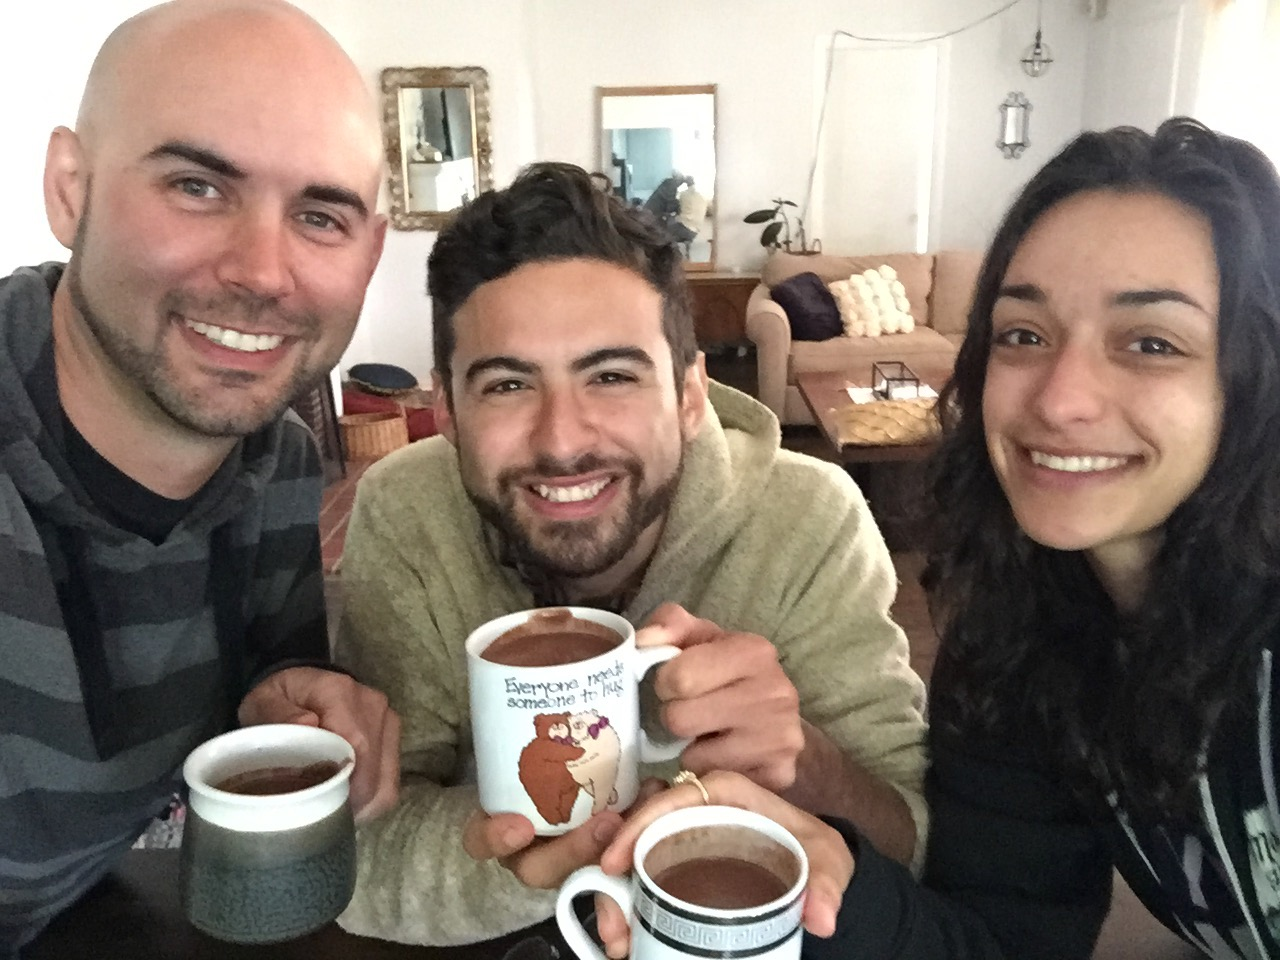 Soul Lift Cacao founder Nick Meador (left) enjoys ceremonial cacao with friends